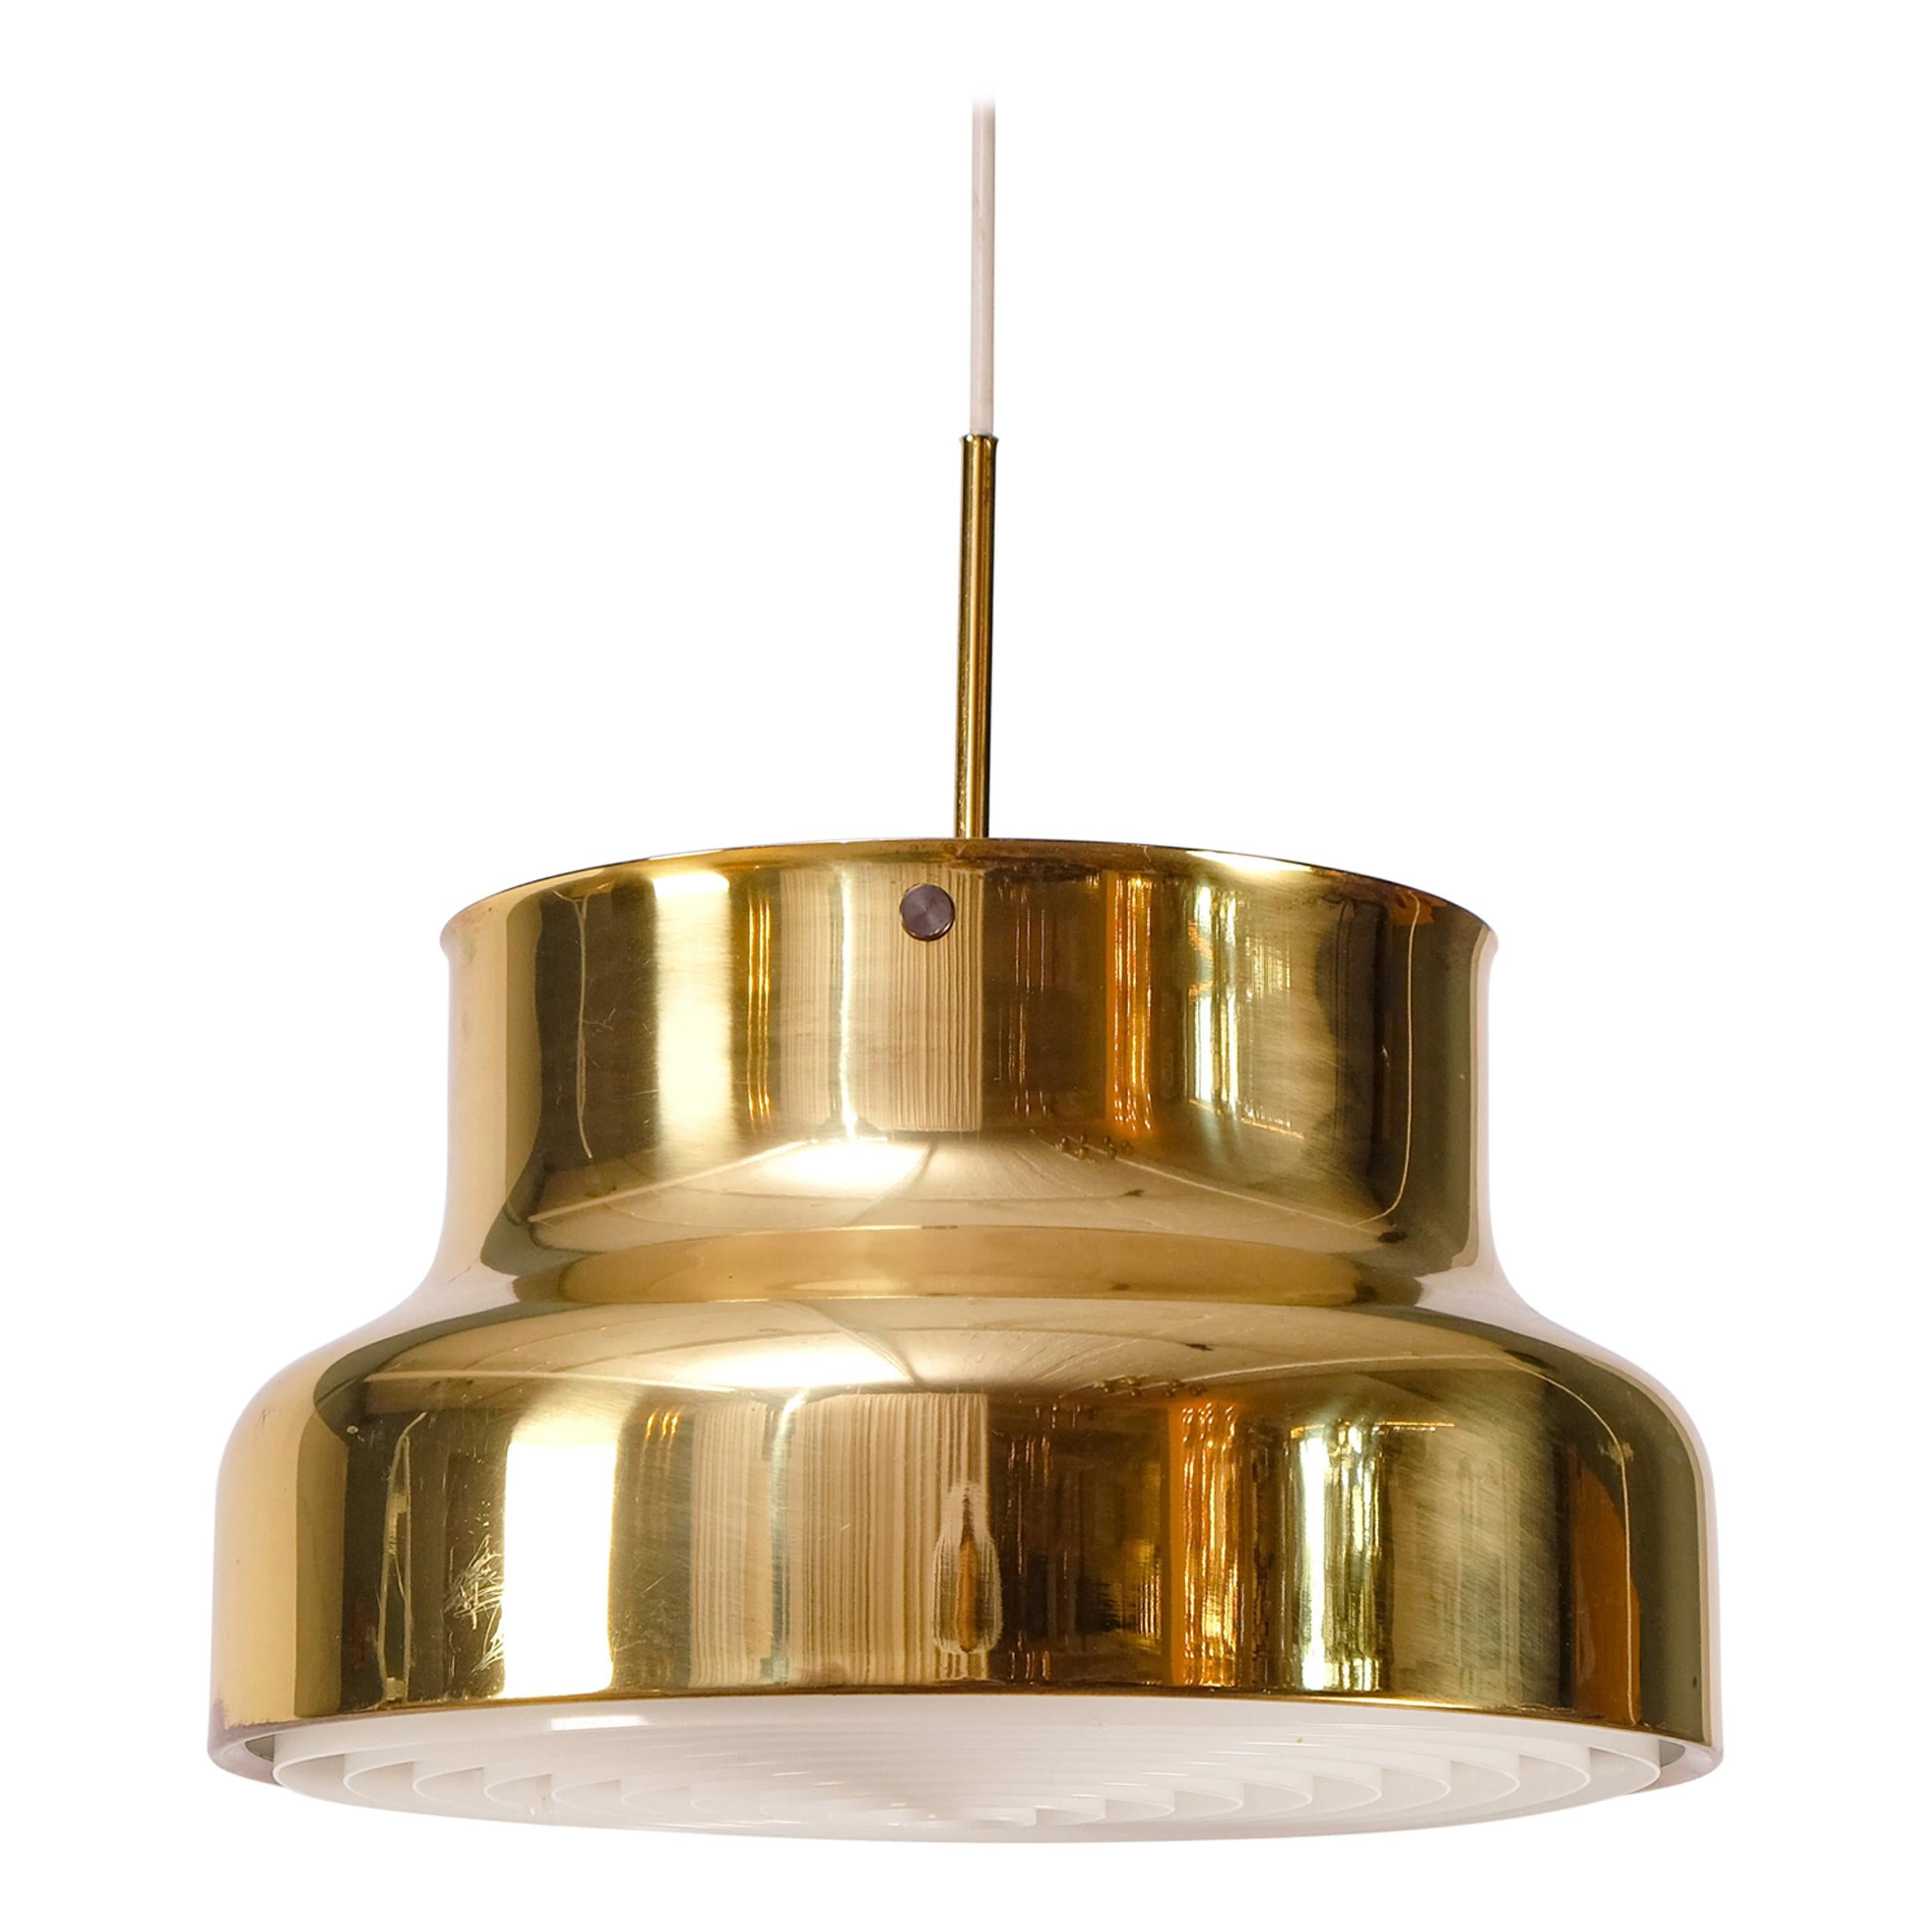 Set of 2 Bumling Ceiling Pendants in Brass, Sweden, 1960s